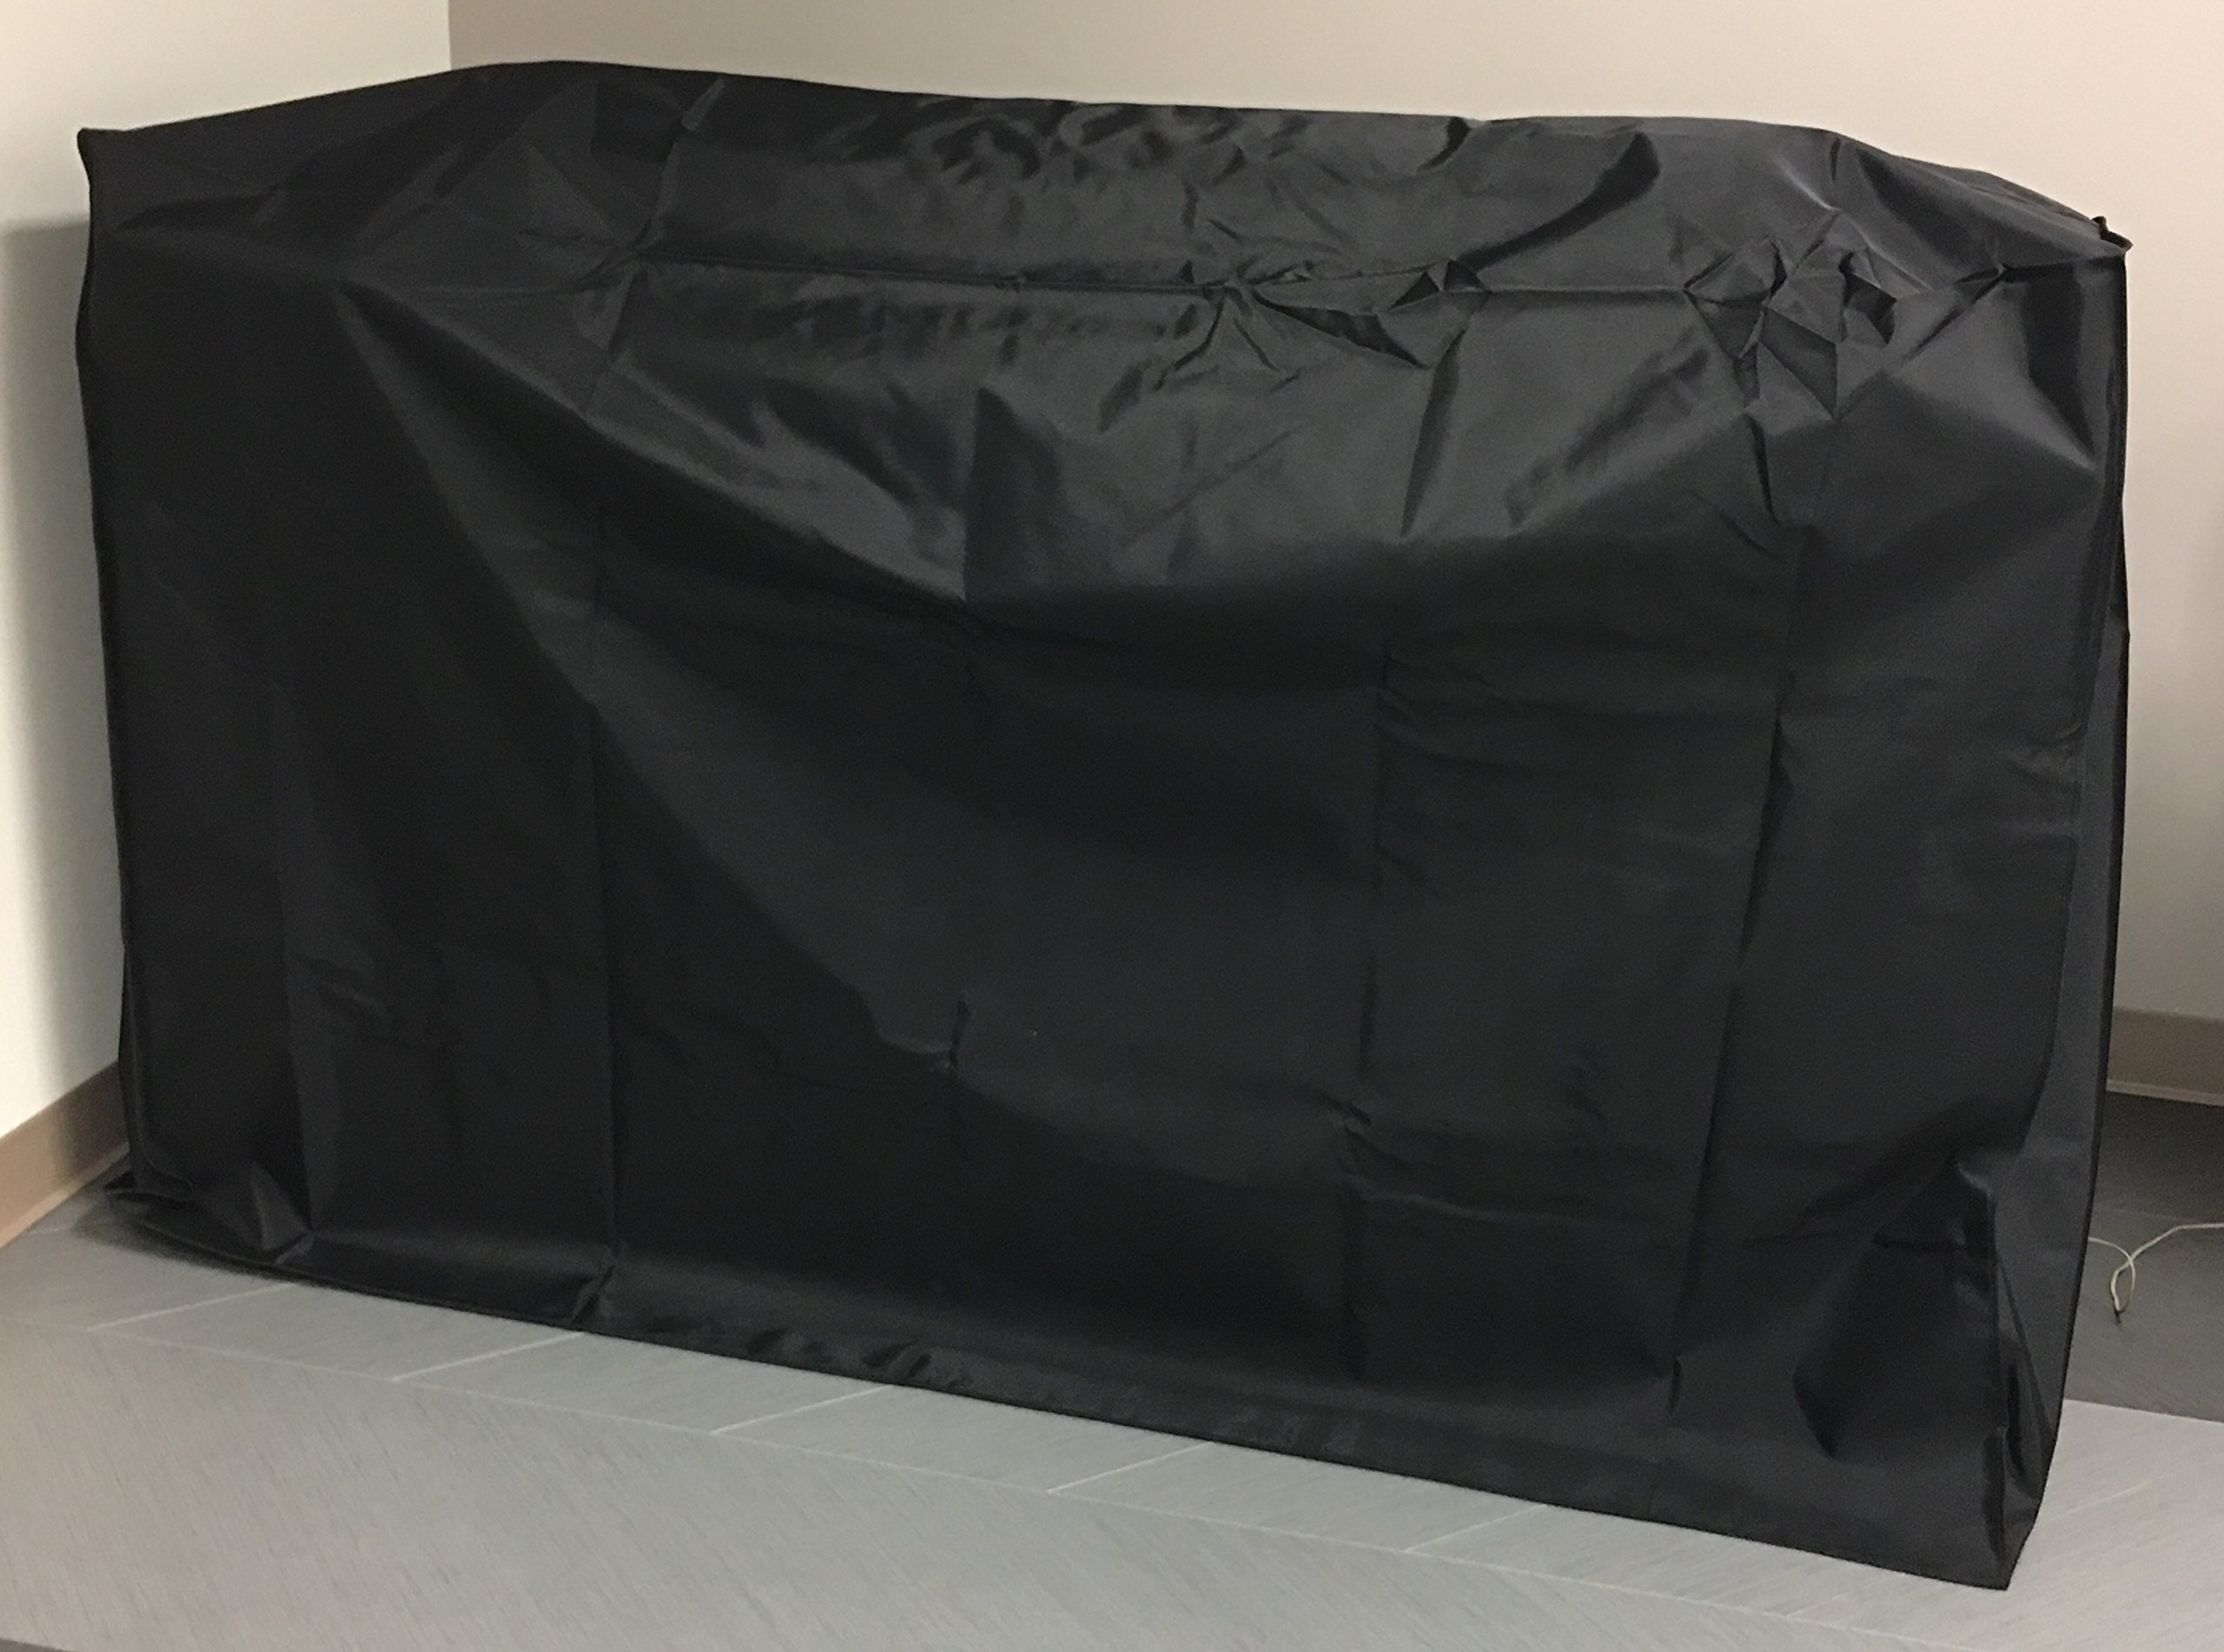 Canon ImagePROGRAF iPF850 Printer Black Nylon Anti-Static Dust Cover 75''W x 52''D x 45'H by Comp Bind Technology